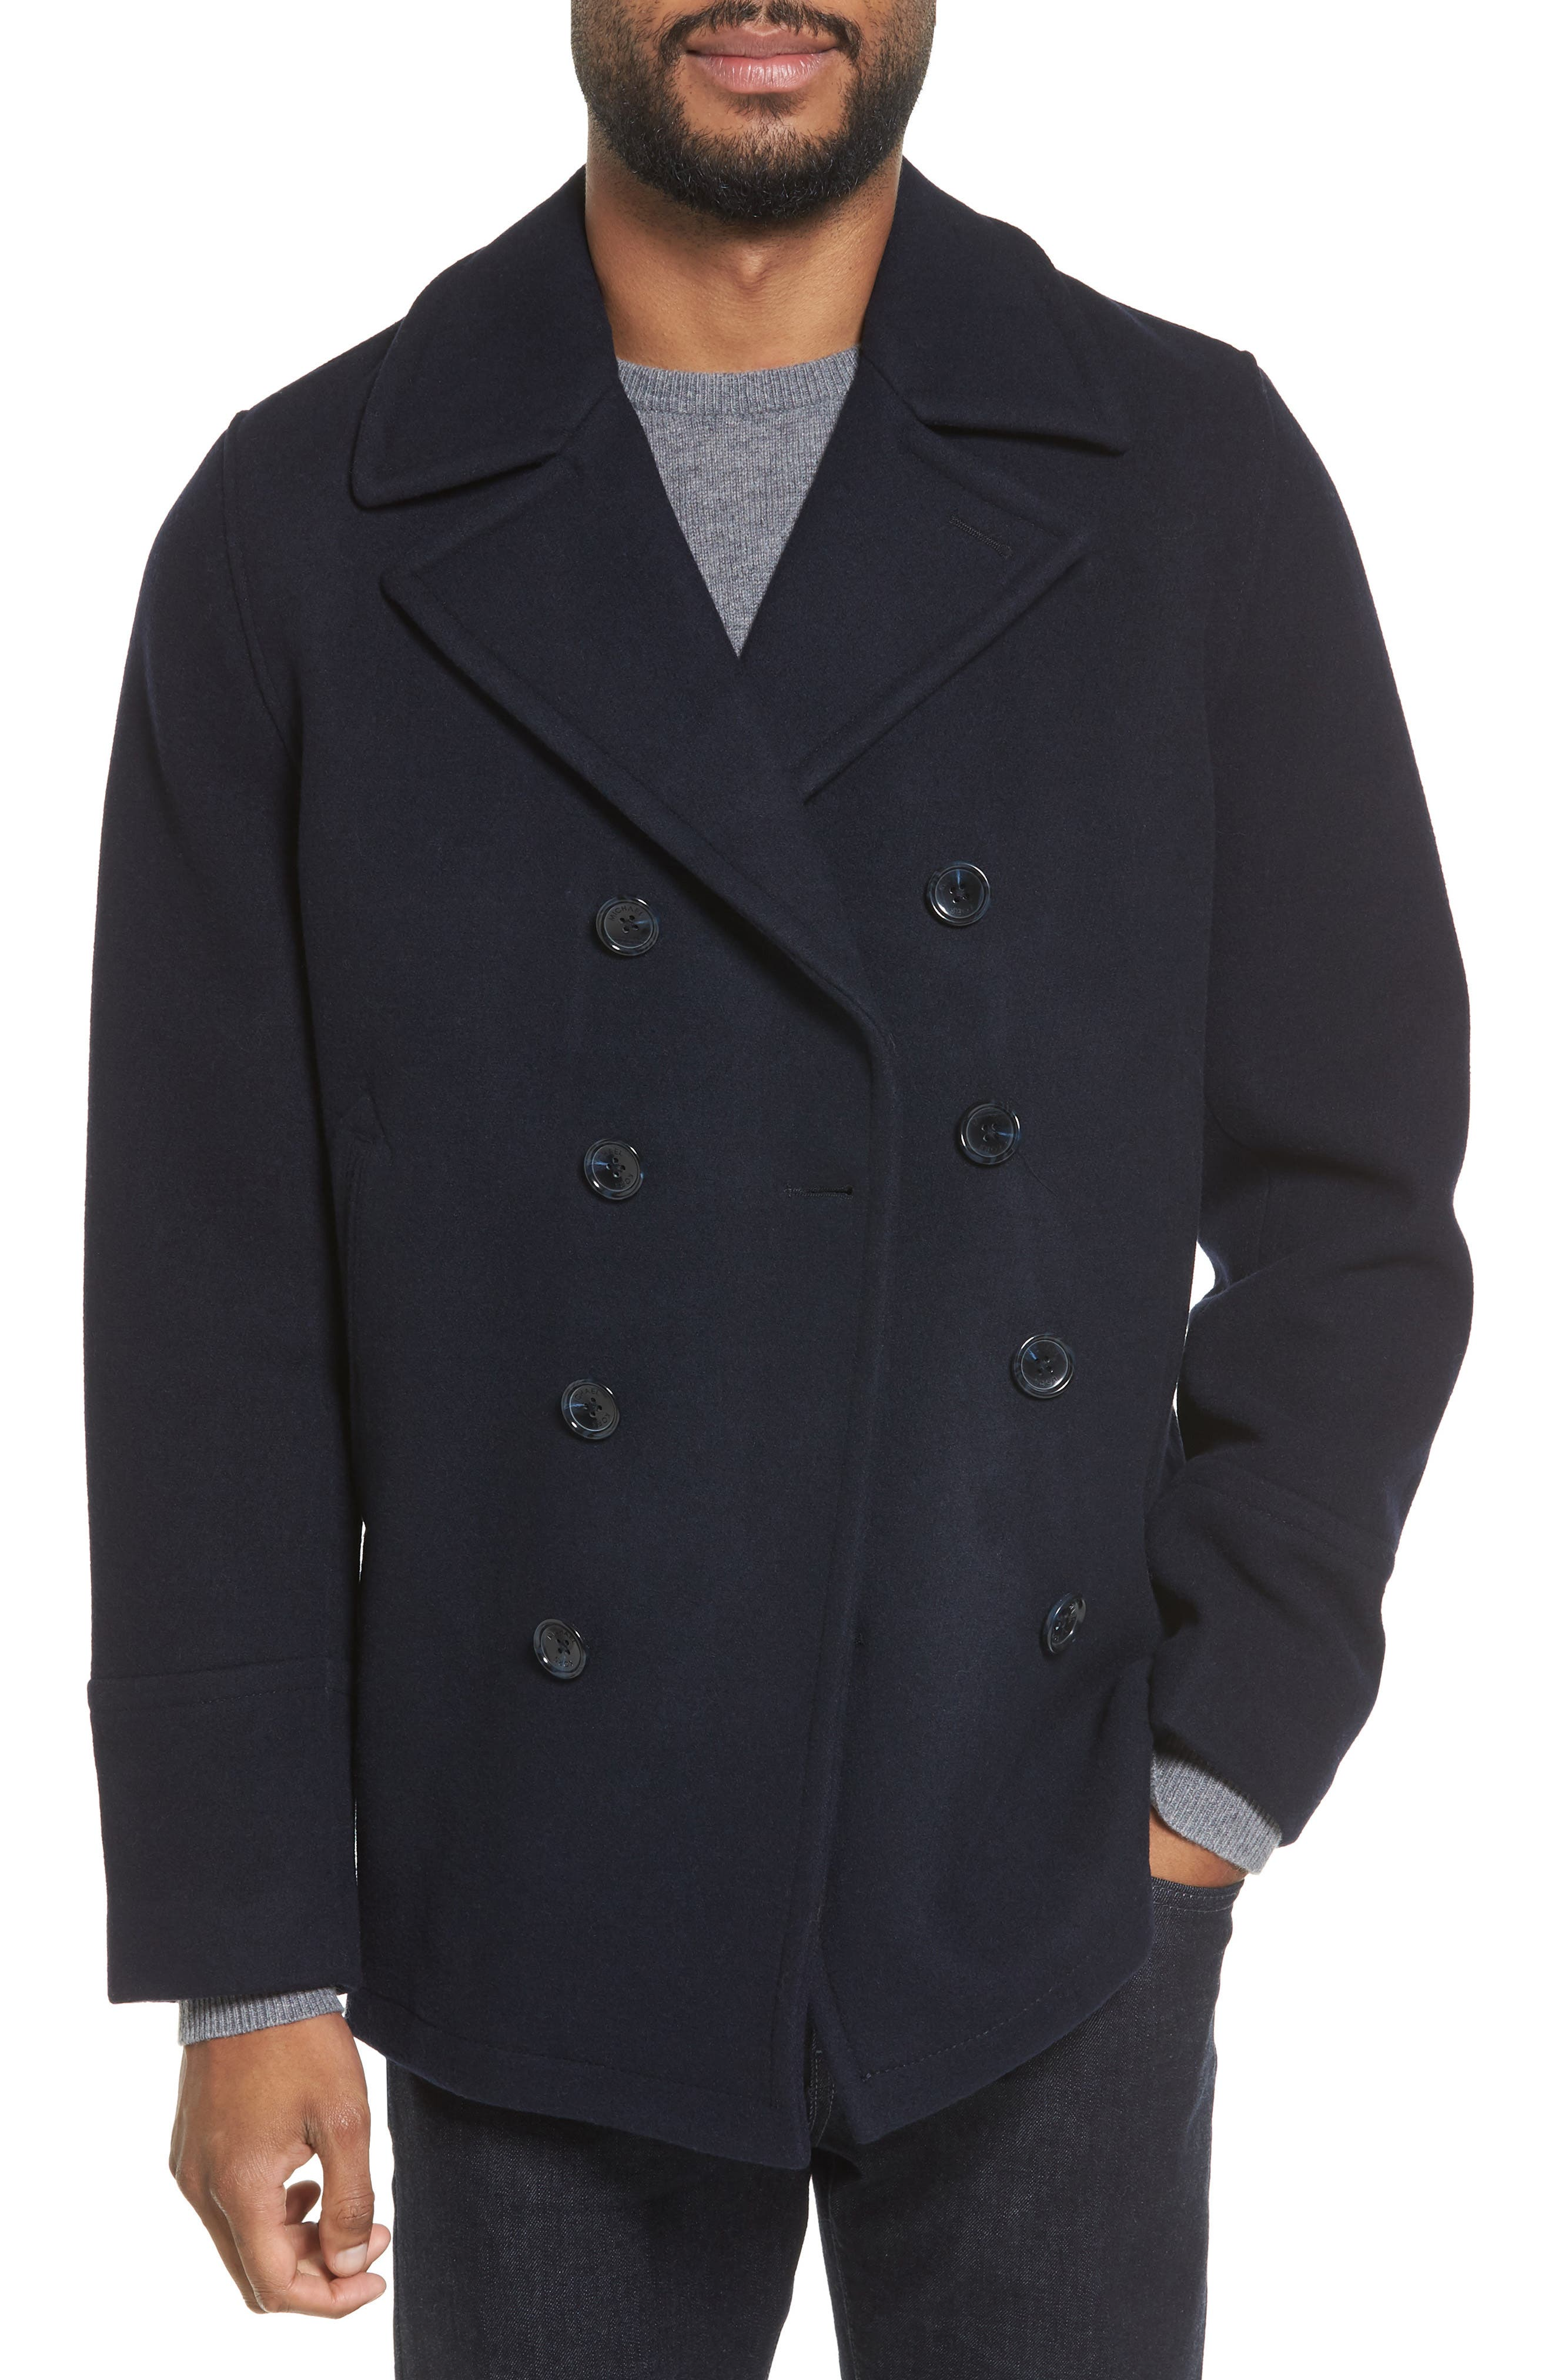 Main Image - Michael Kors Wool Blend Double Breasted Peacoat